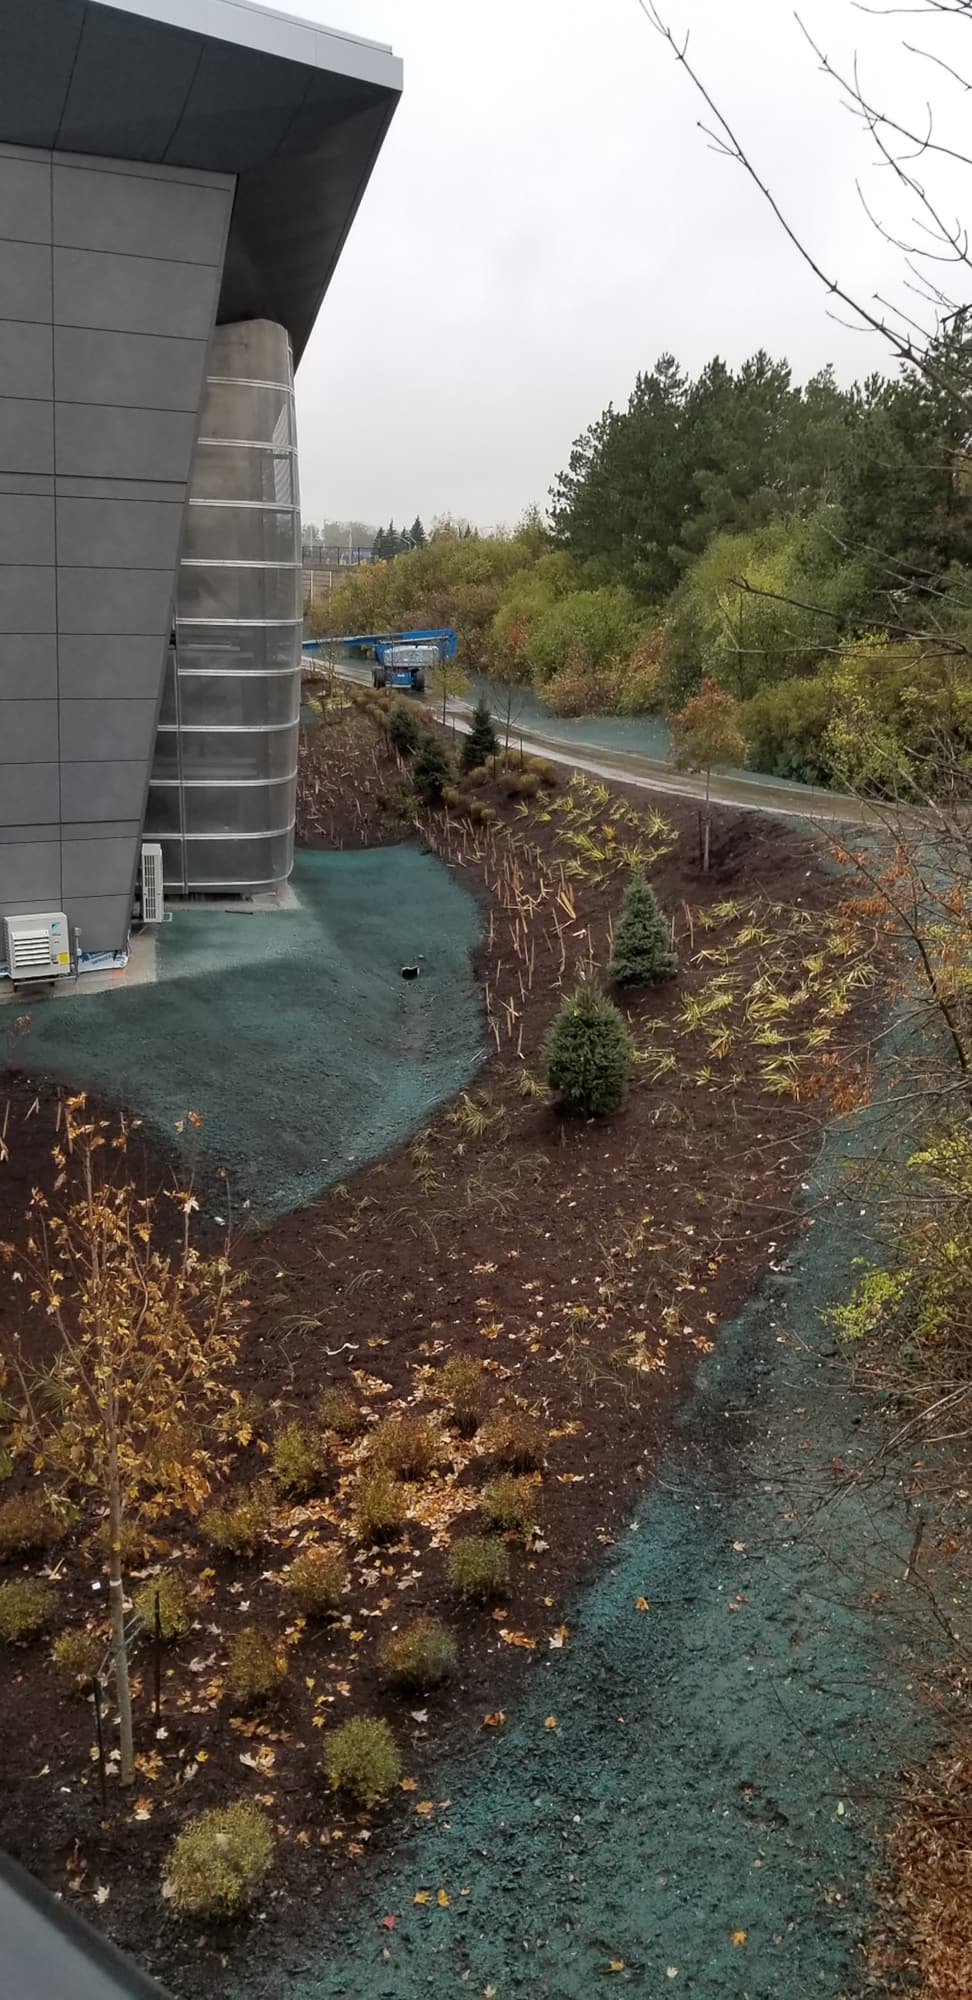 Tremblay OLRT Station showing hydroseeding and plant beds